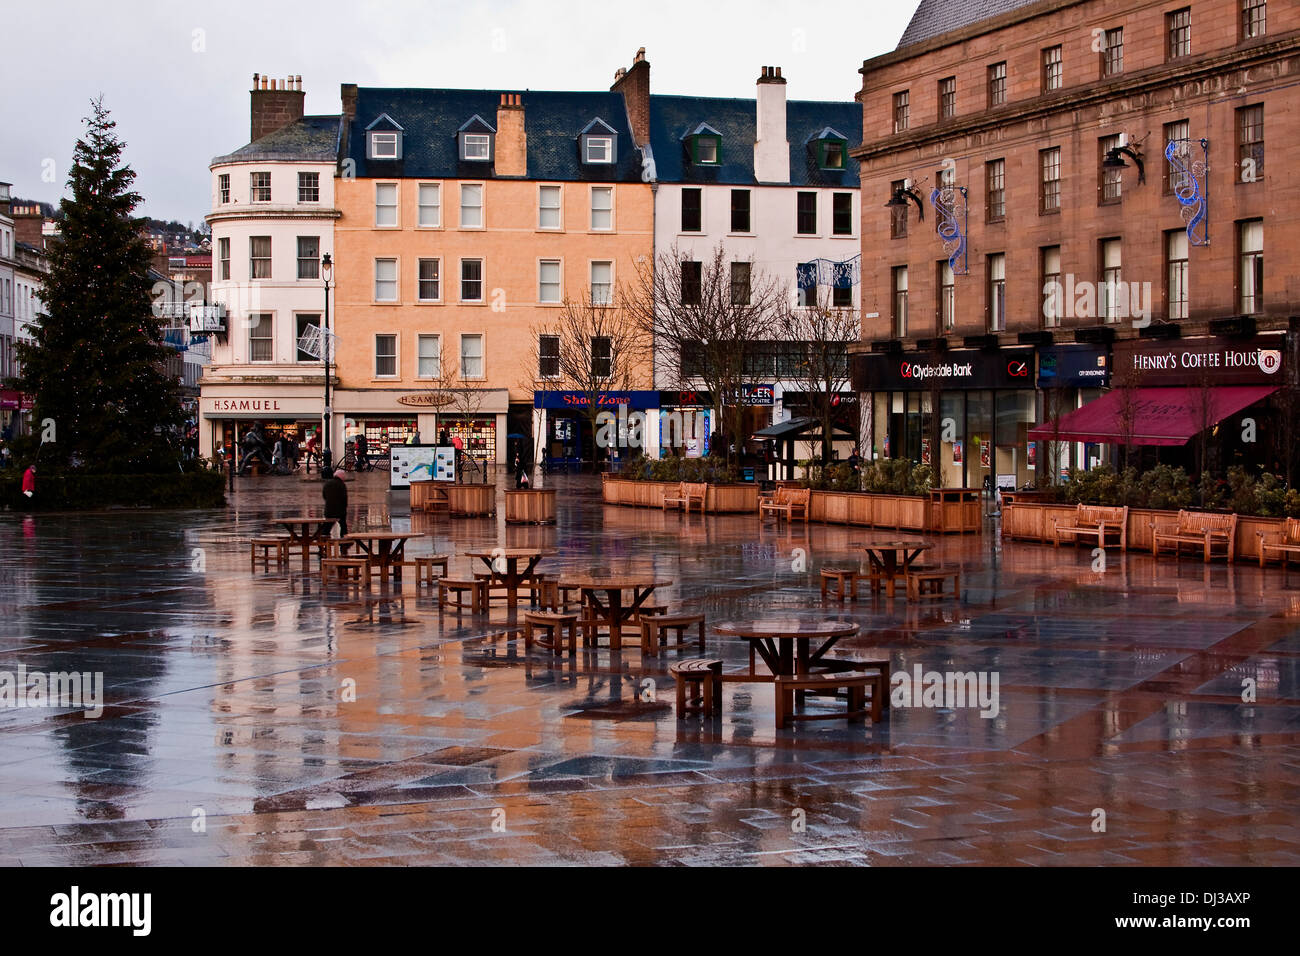 Reflections of the Christmas Tree and buildings along the City Square after a passing rain shower in Dundee, UK - Stock Image